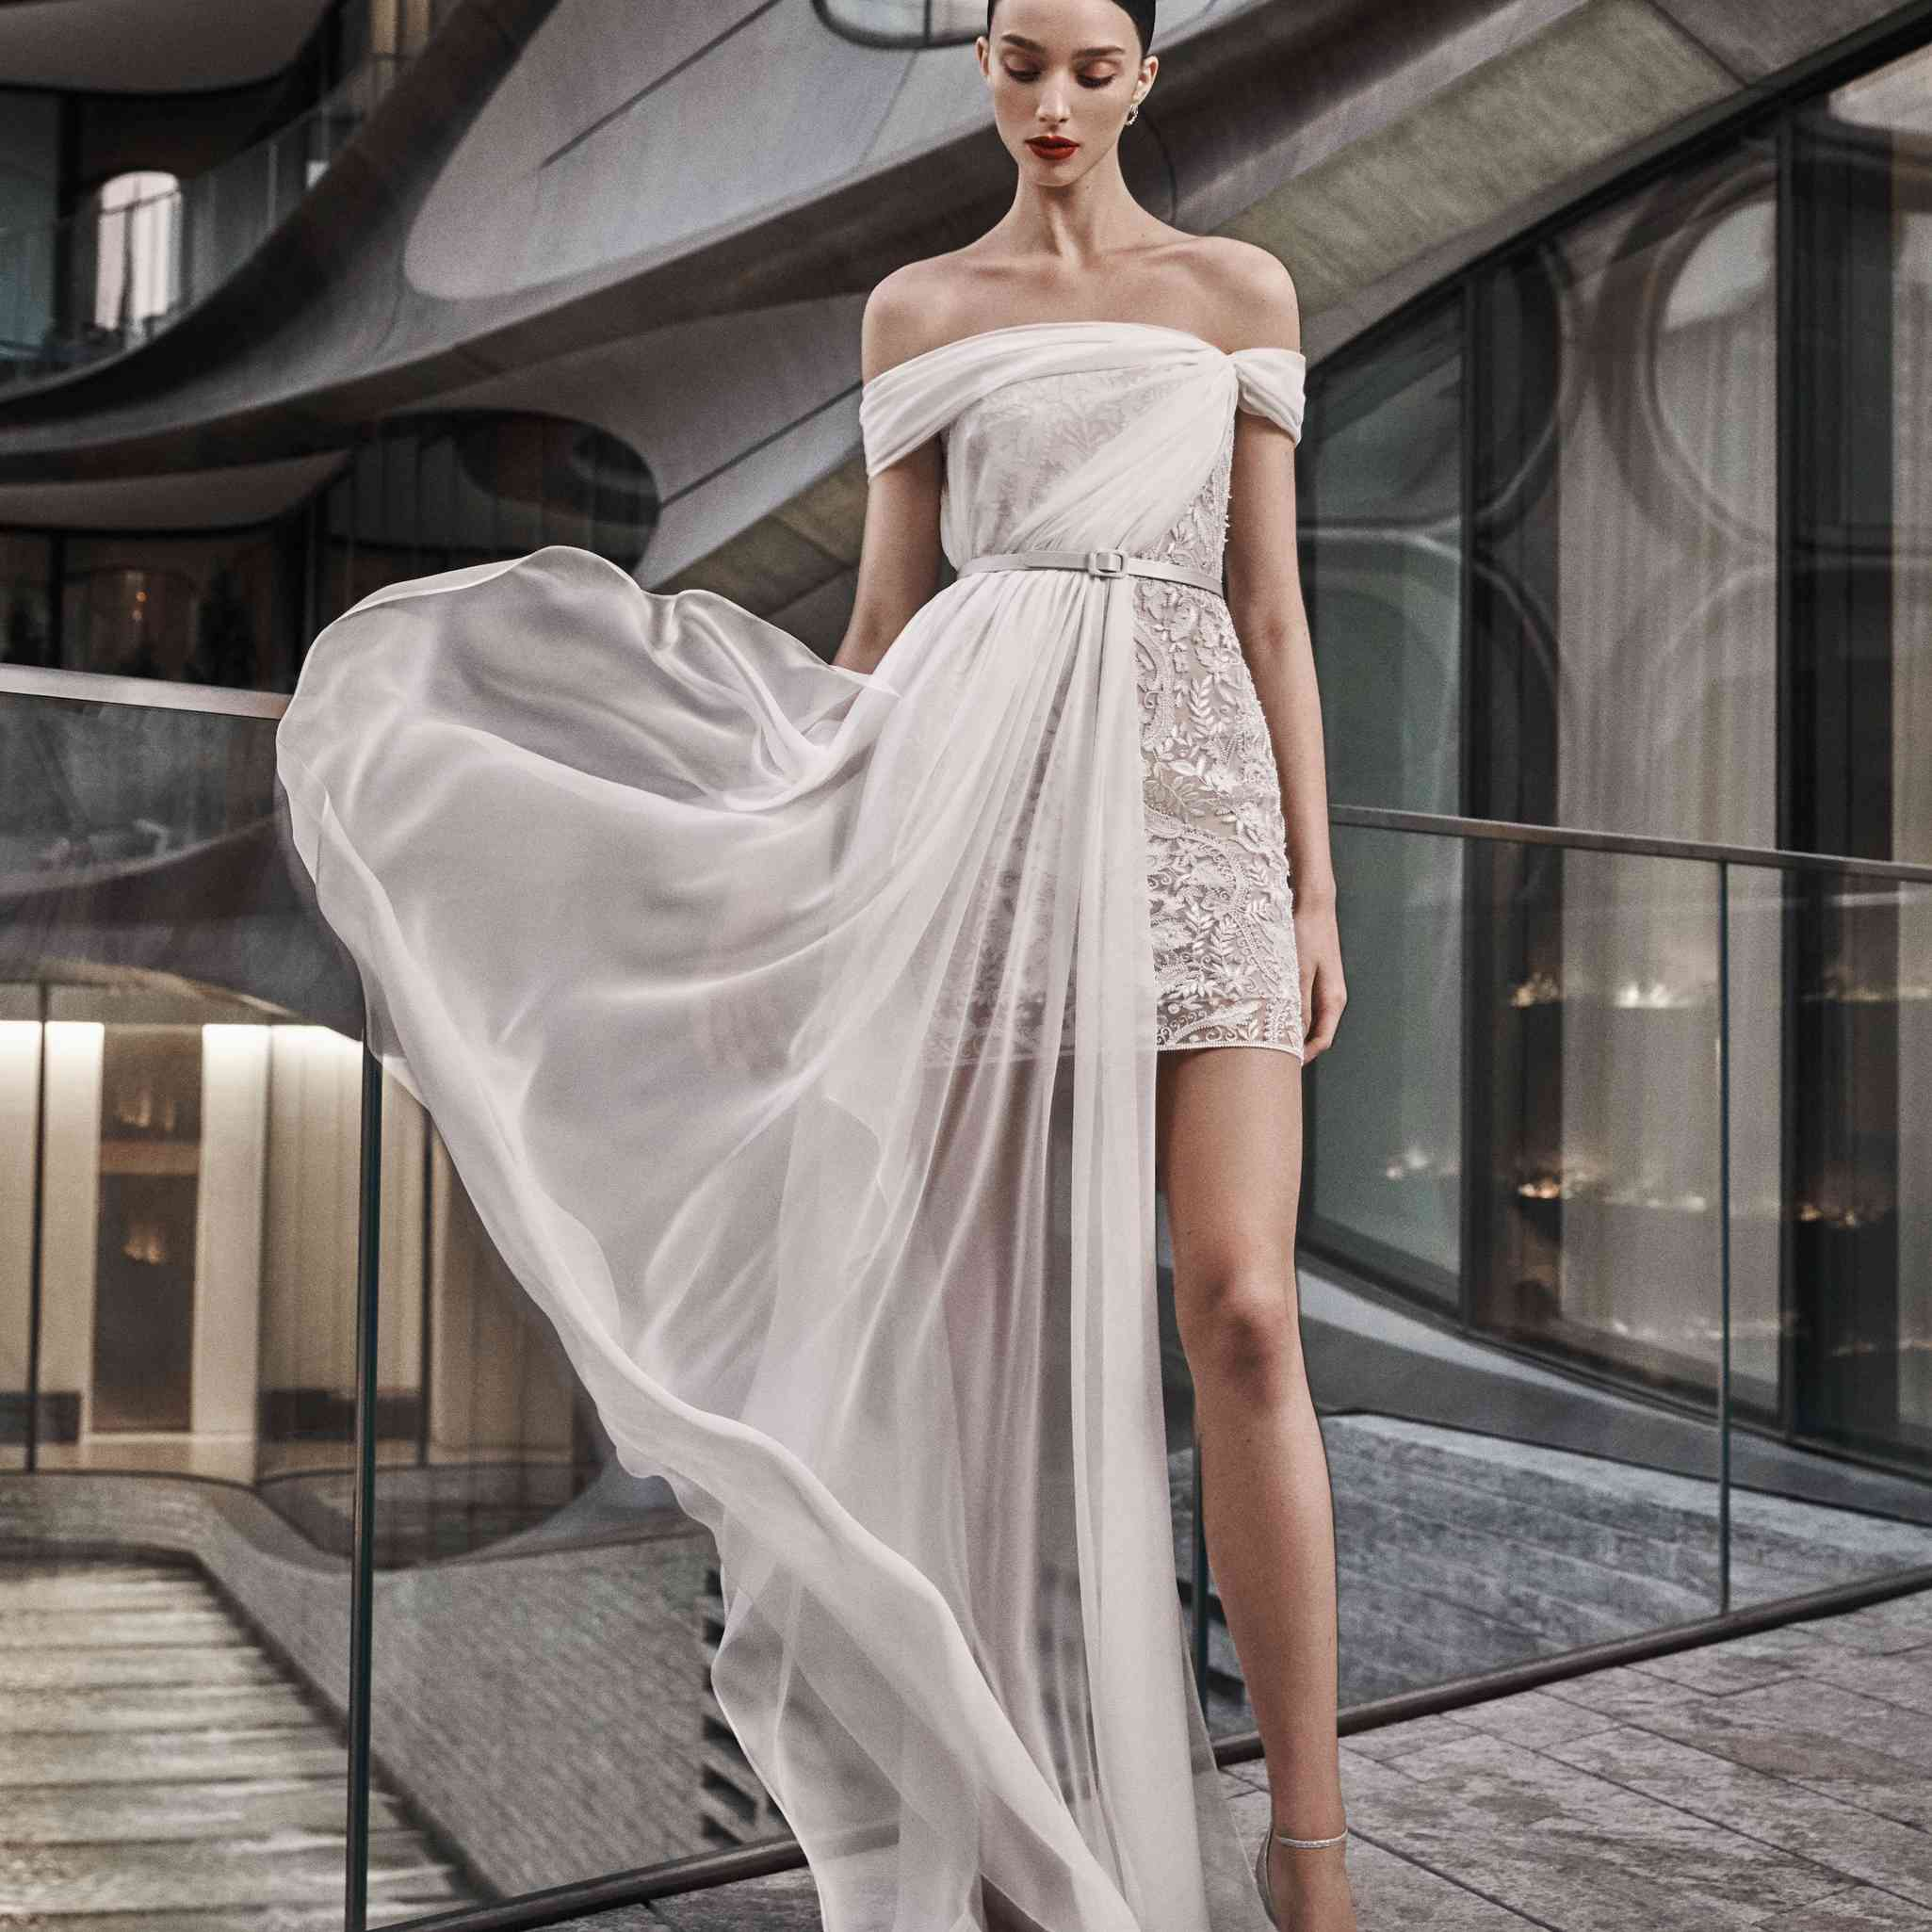 Model in off-the-shoulder embroidered mini dress with chiffon draping.